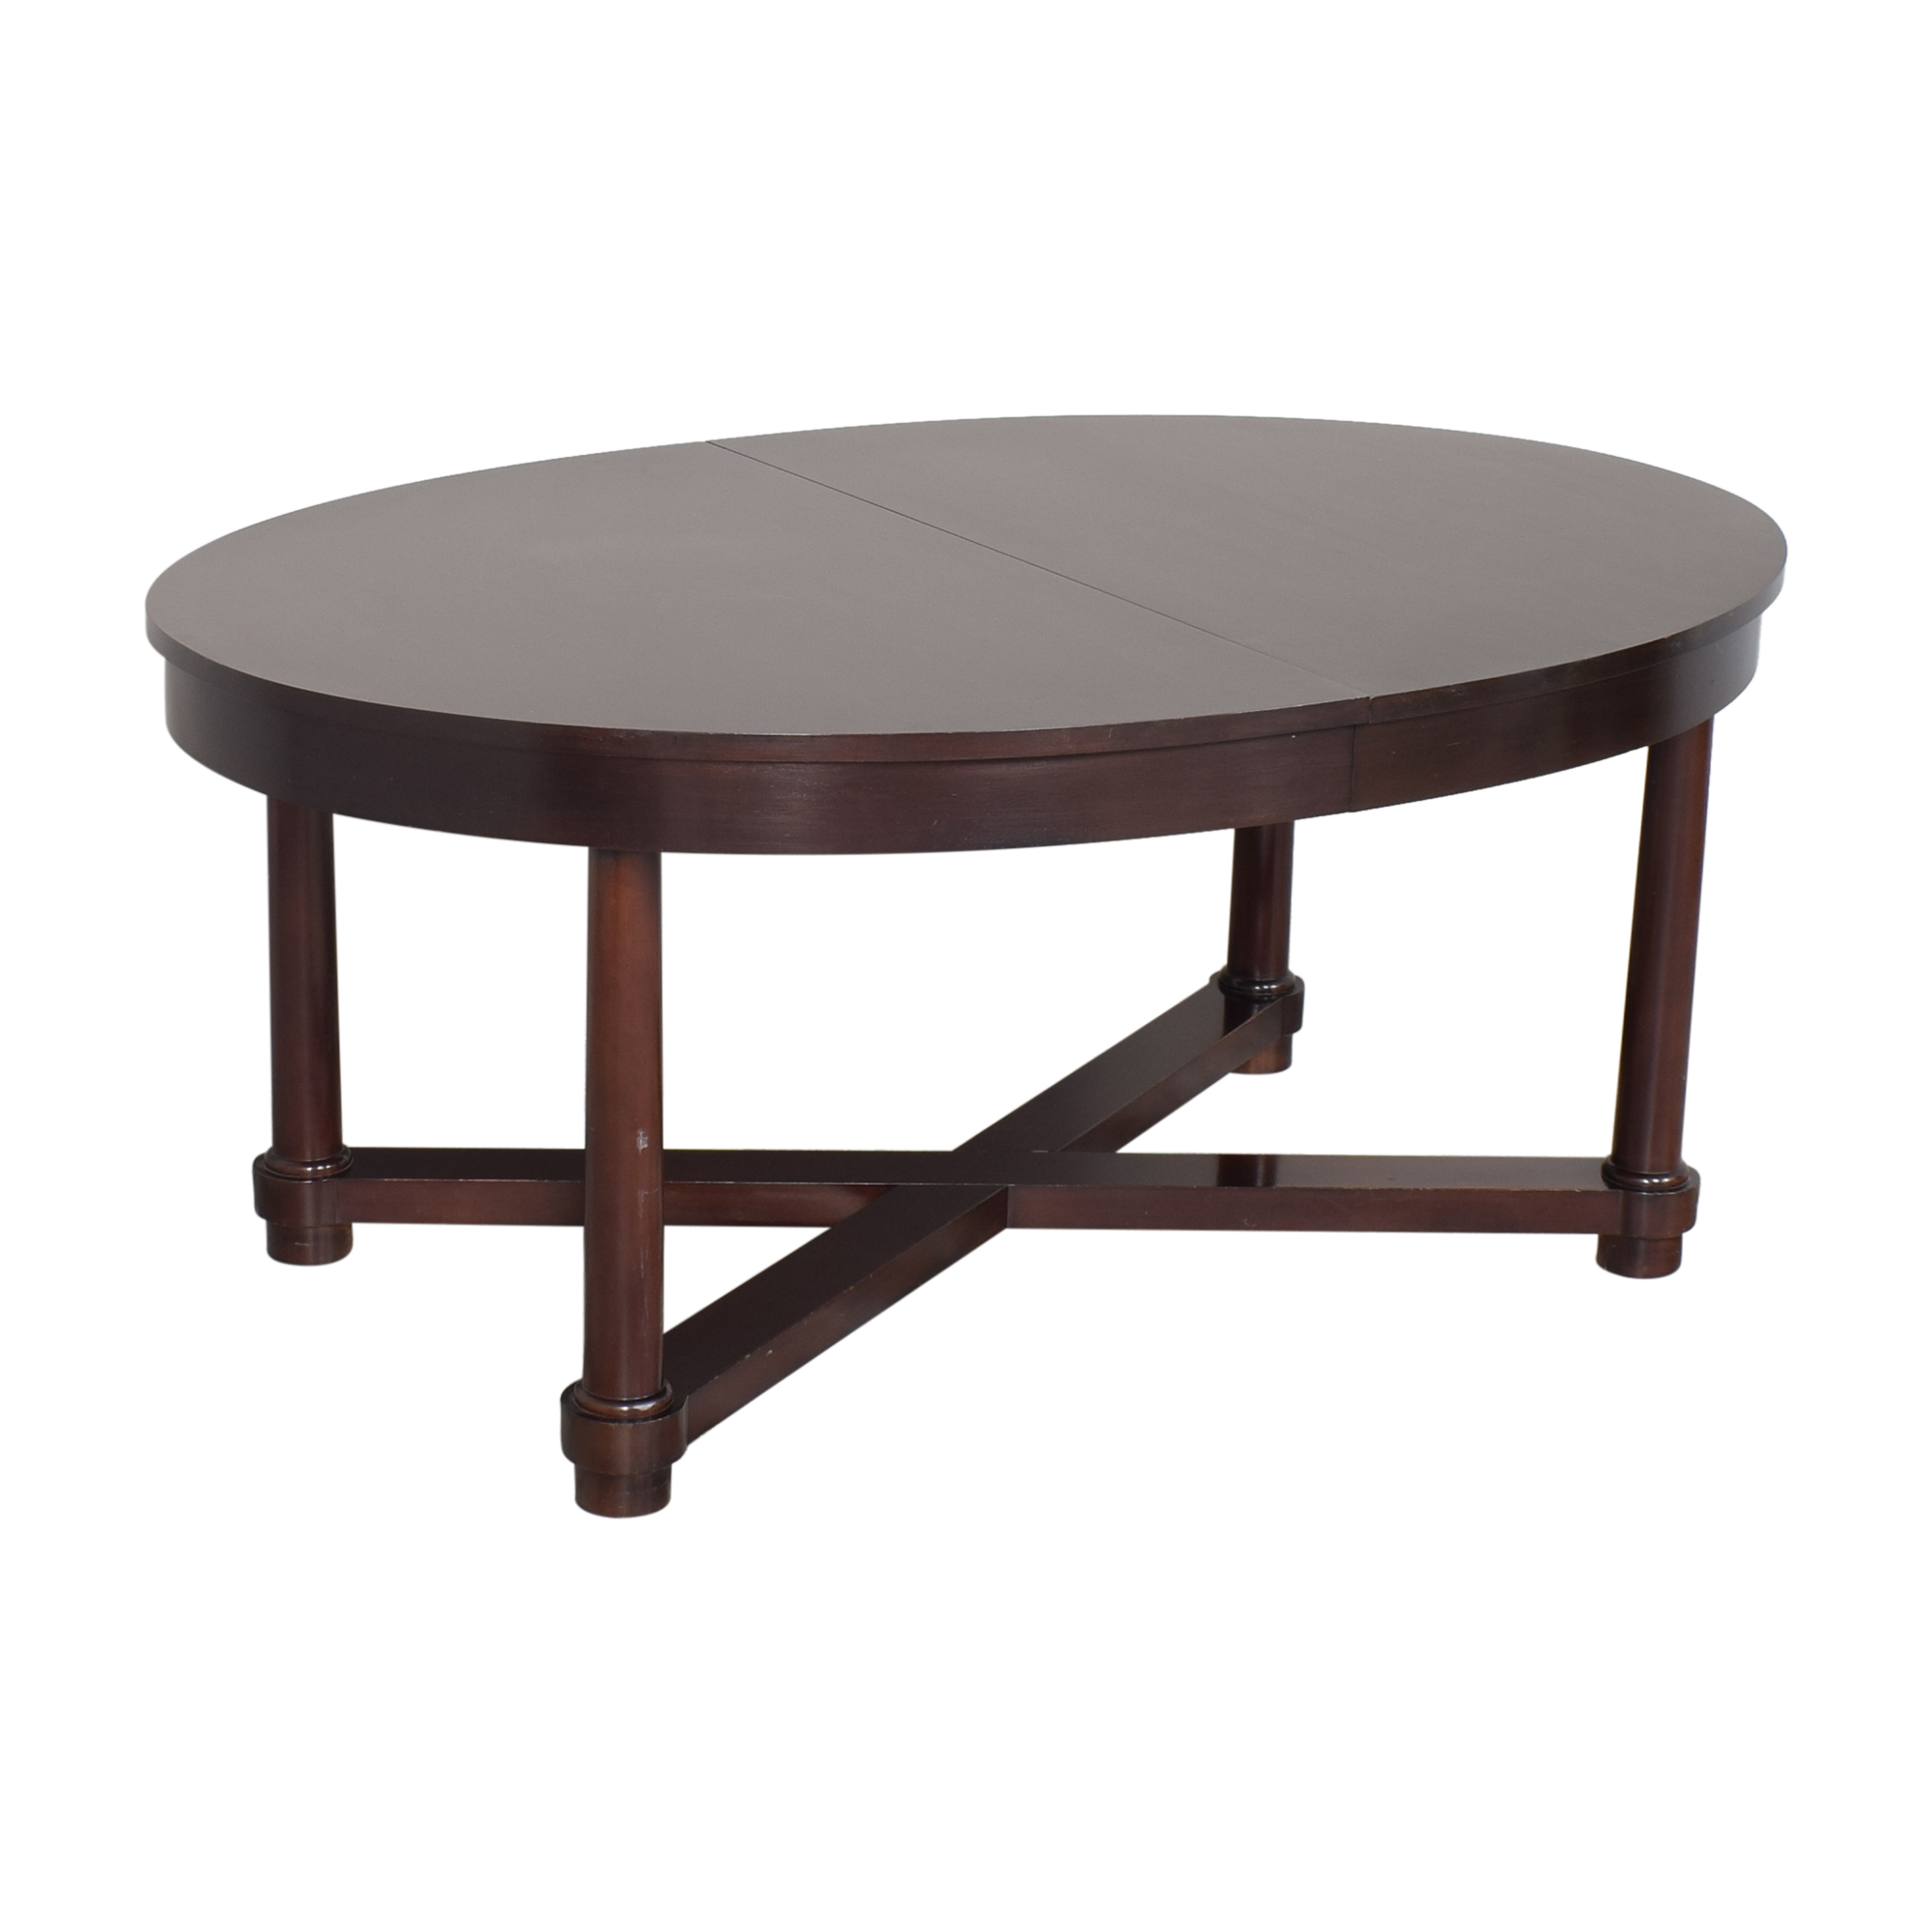 Baker Furniture Baker Furniture Barbara Barry Extendable Dining Table price